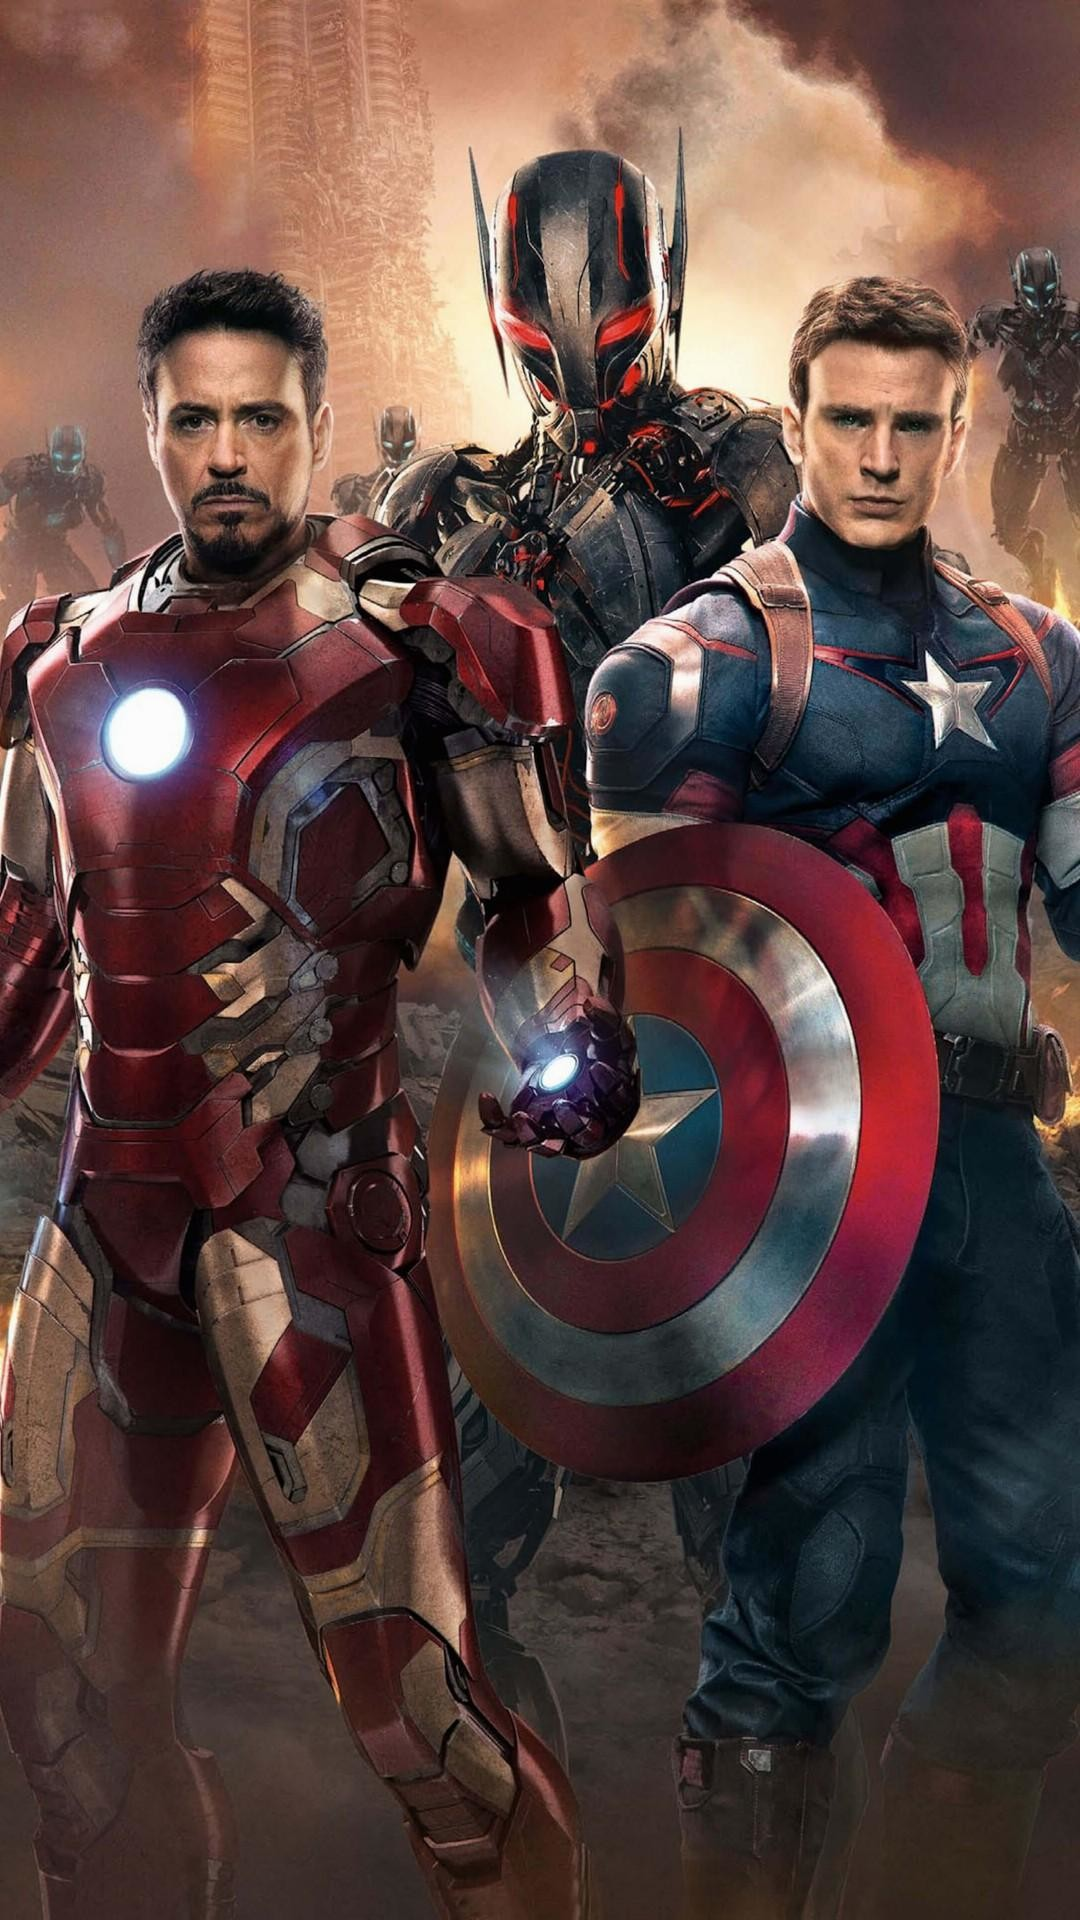 wallpaper.wiki-Cool-Avengers-Iphone-Background-PIC-WPC0010549